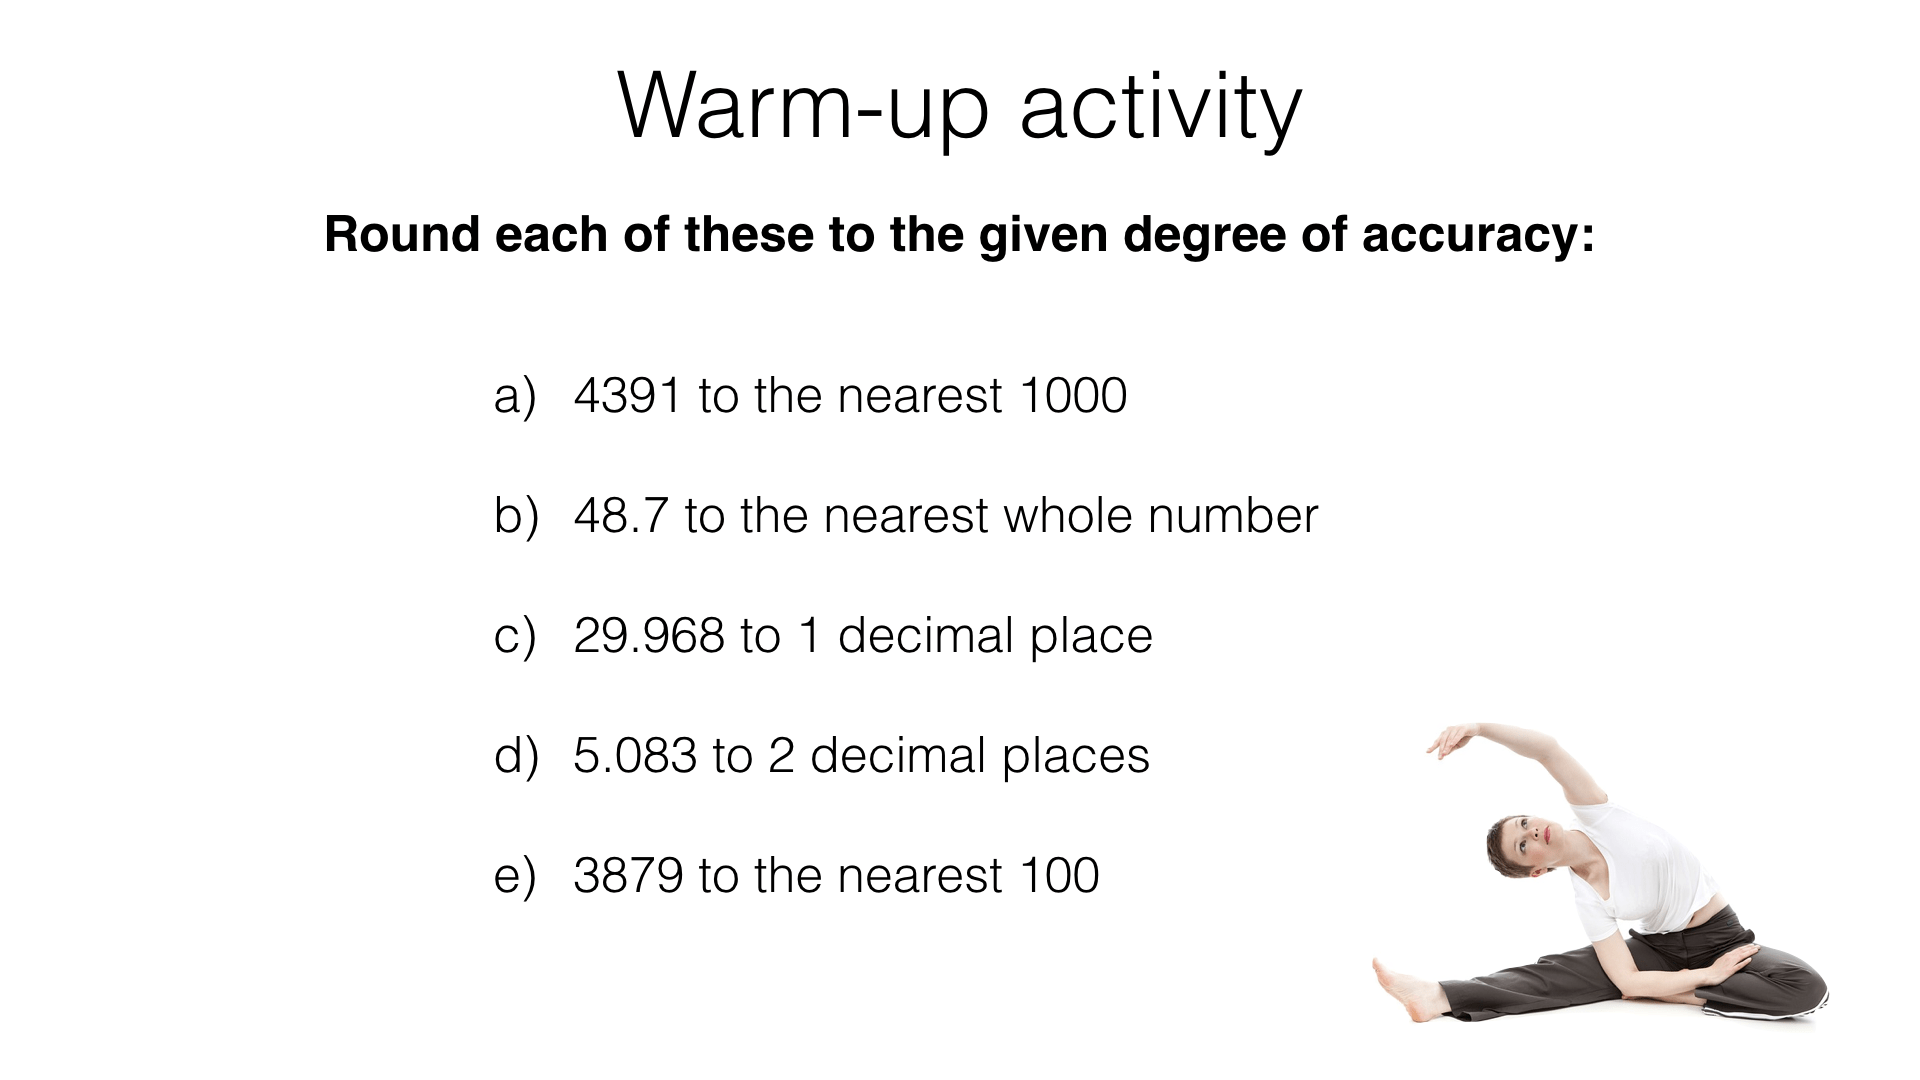 Worksheet On Limits Of Accuracy